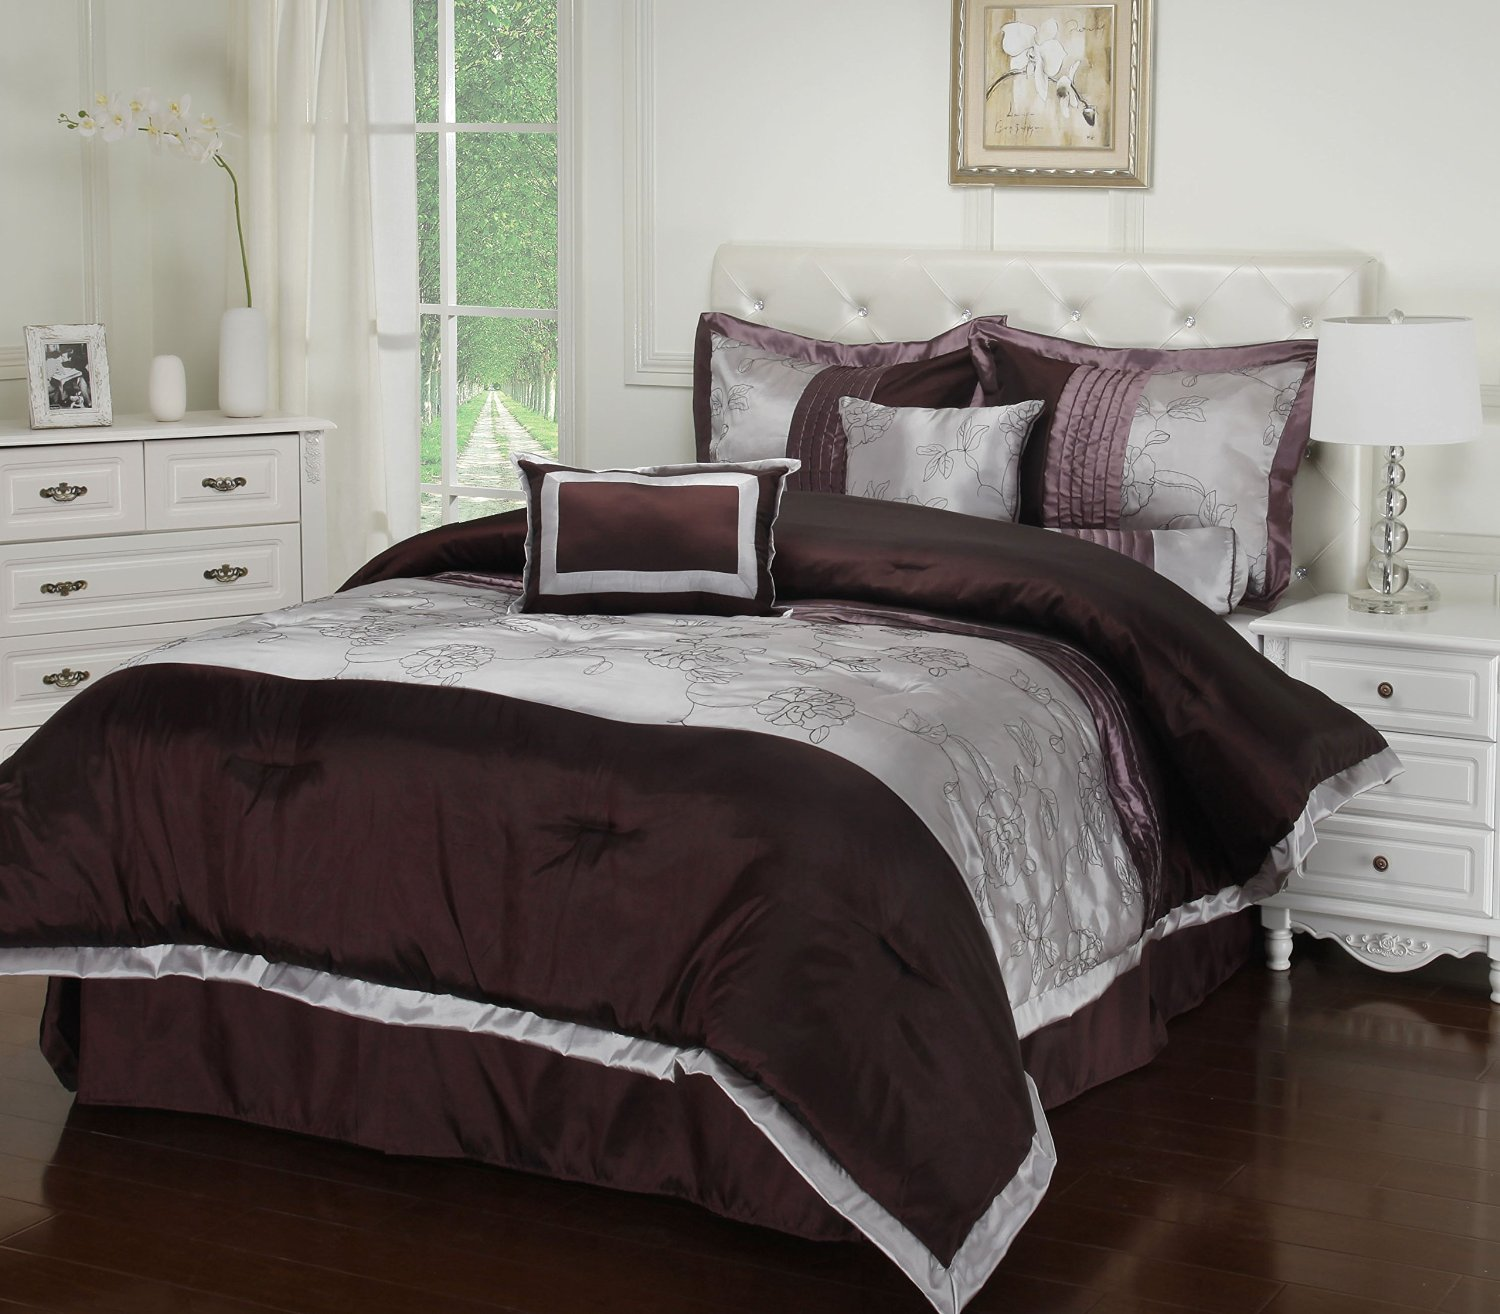 GoLinens: Luxury Kashmir Simple Floral Embroidered Design With Plum Accents 7 Pc Bed in a Bag set